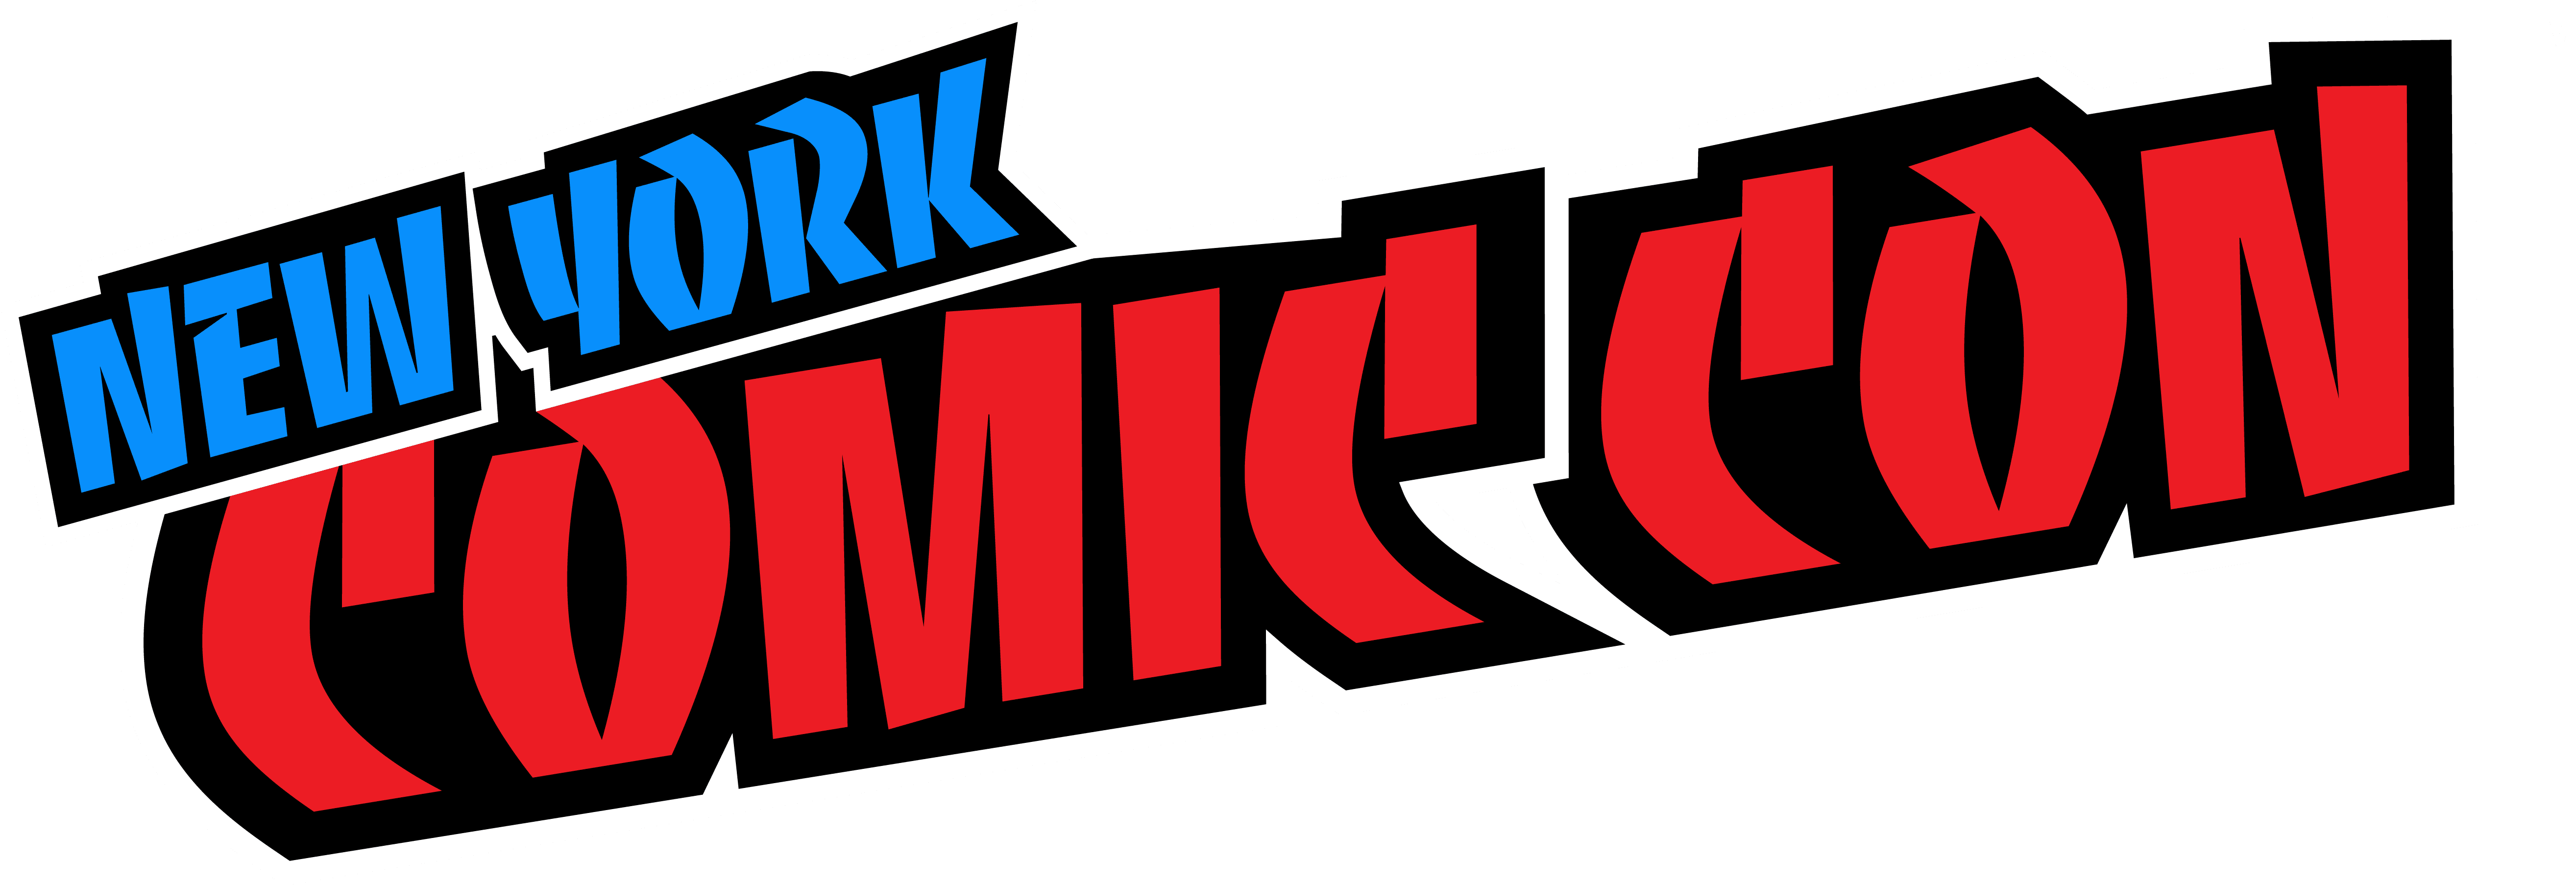 Image result for NYCC 2018